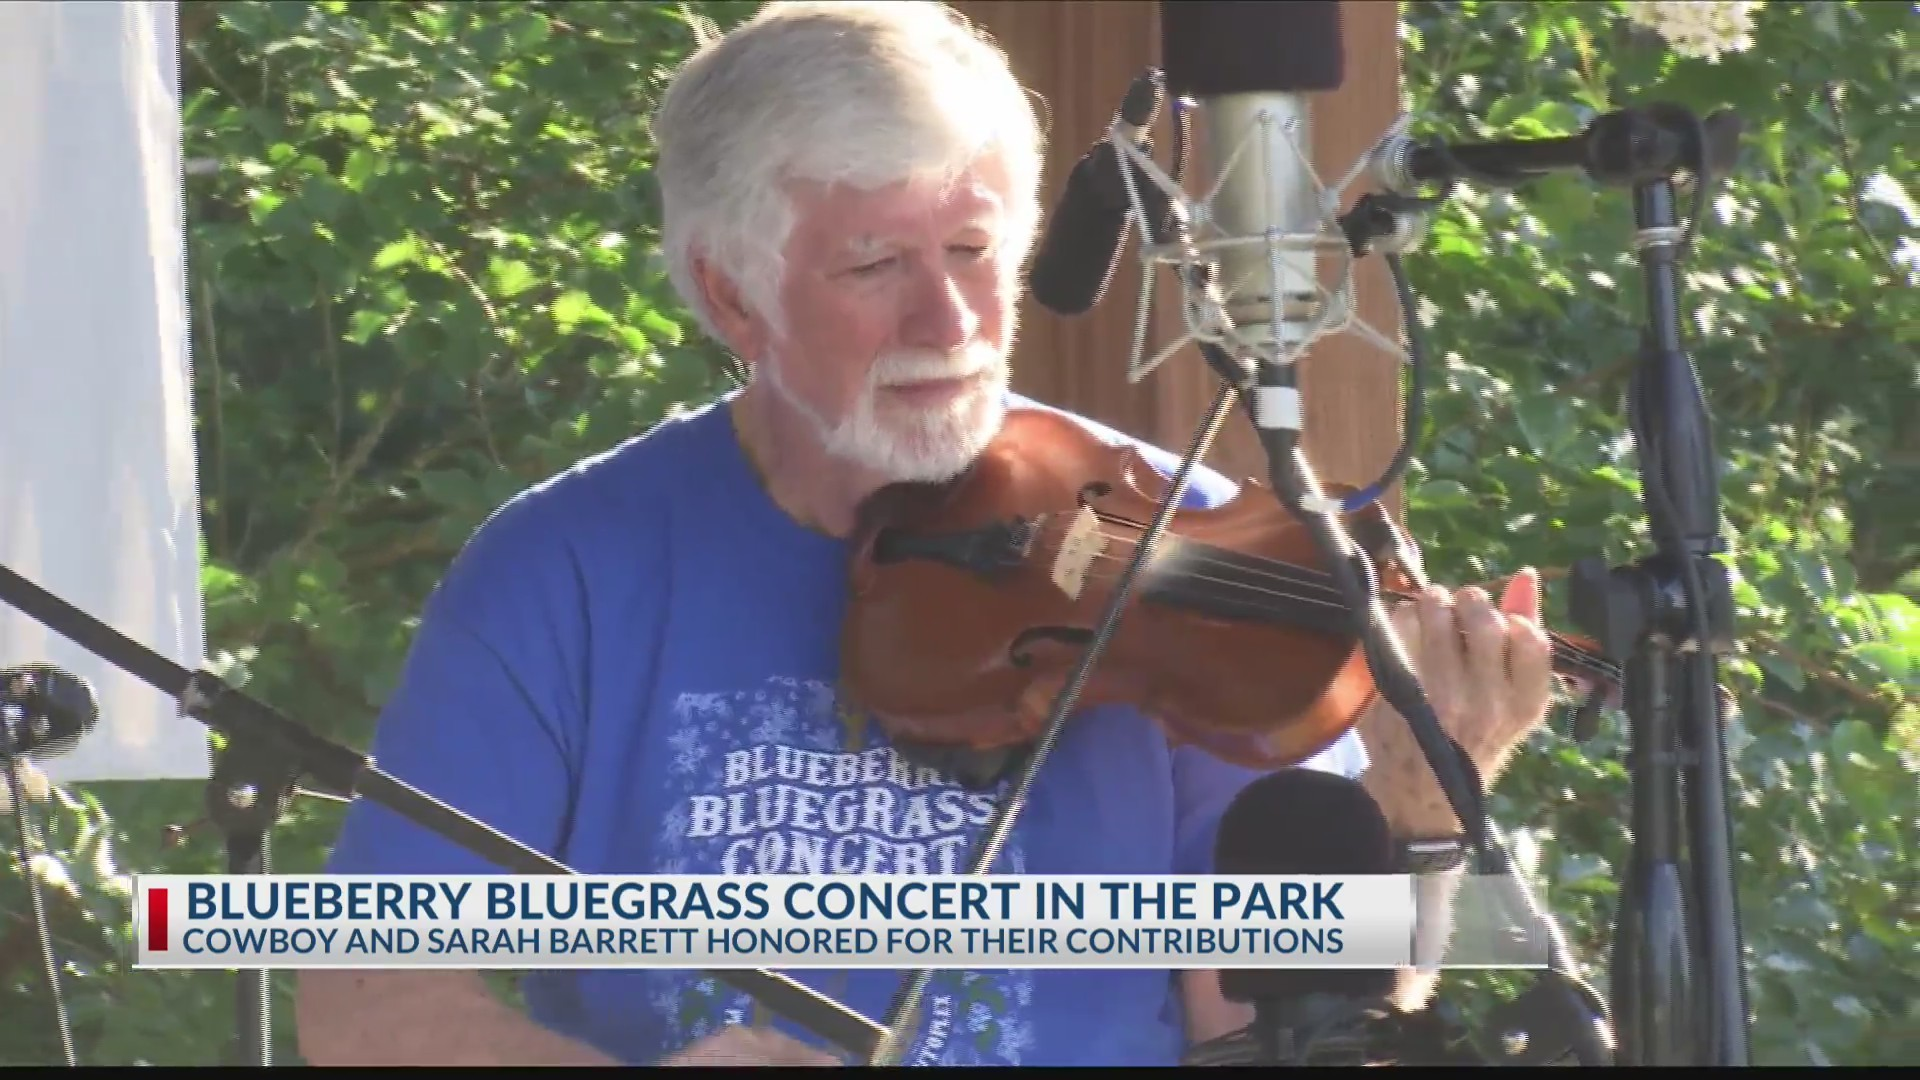 Blueberry bluegrass concert